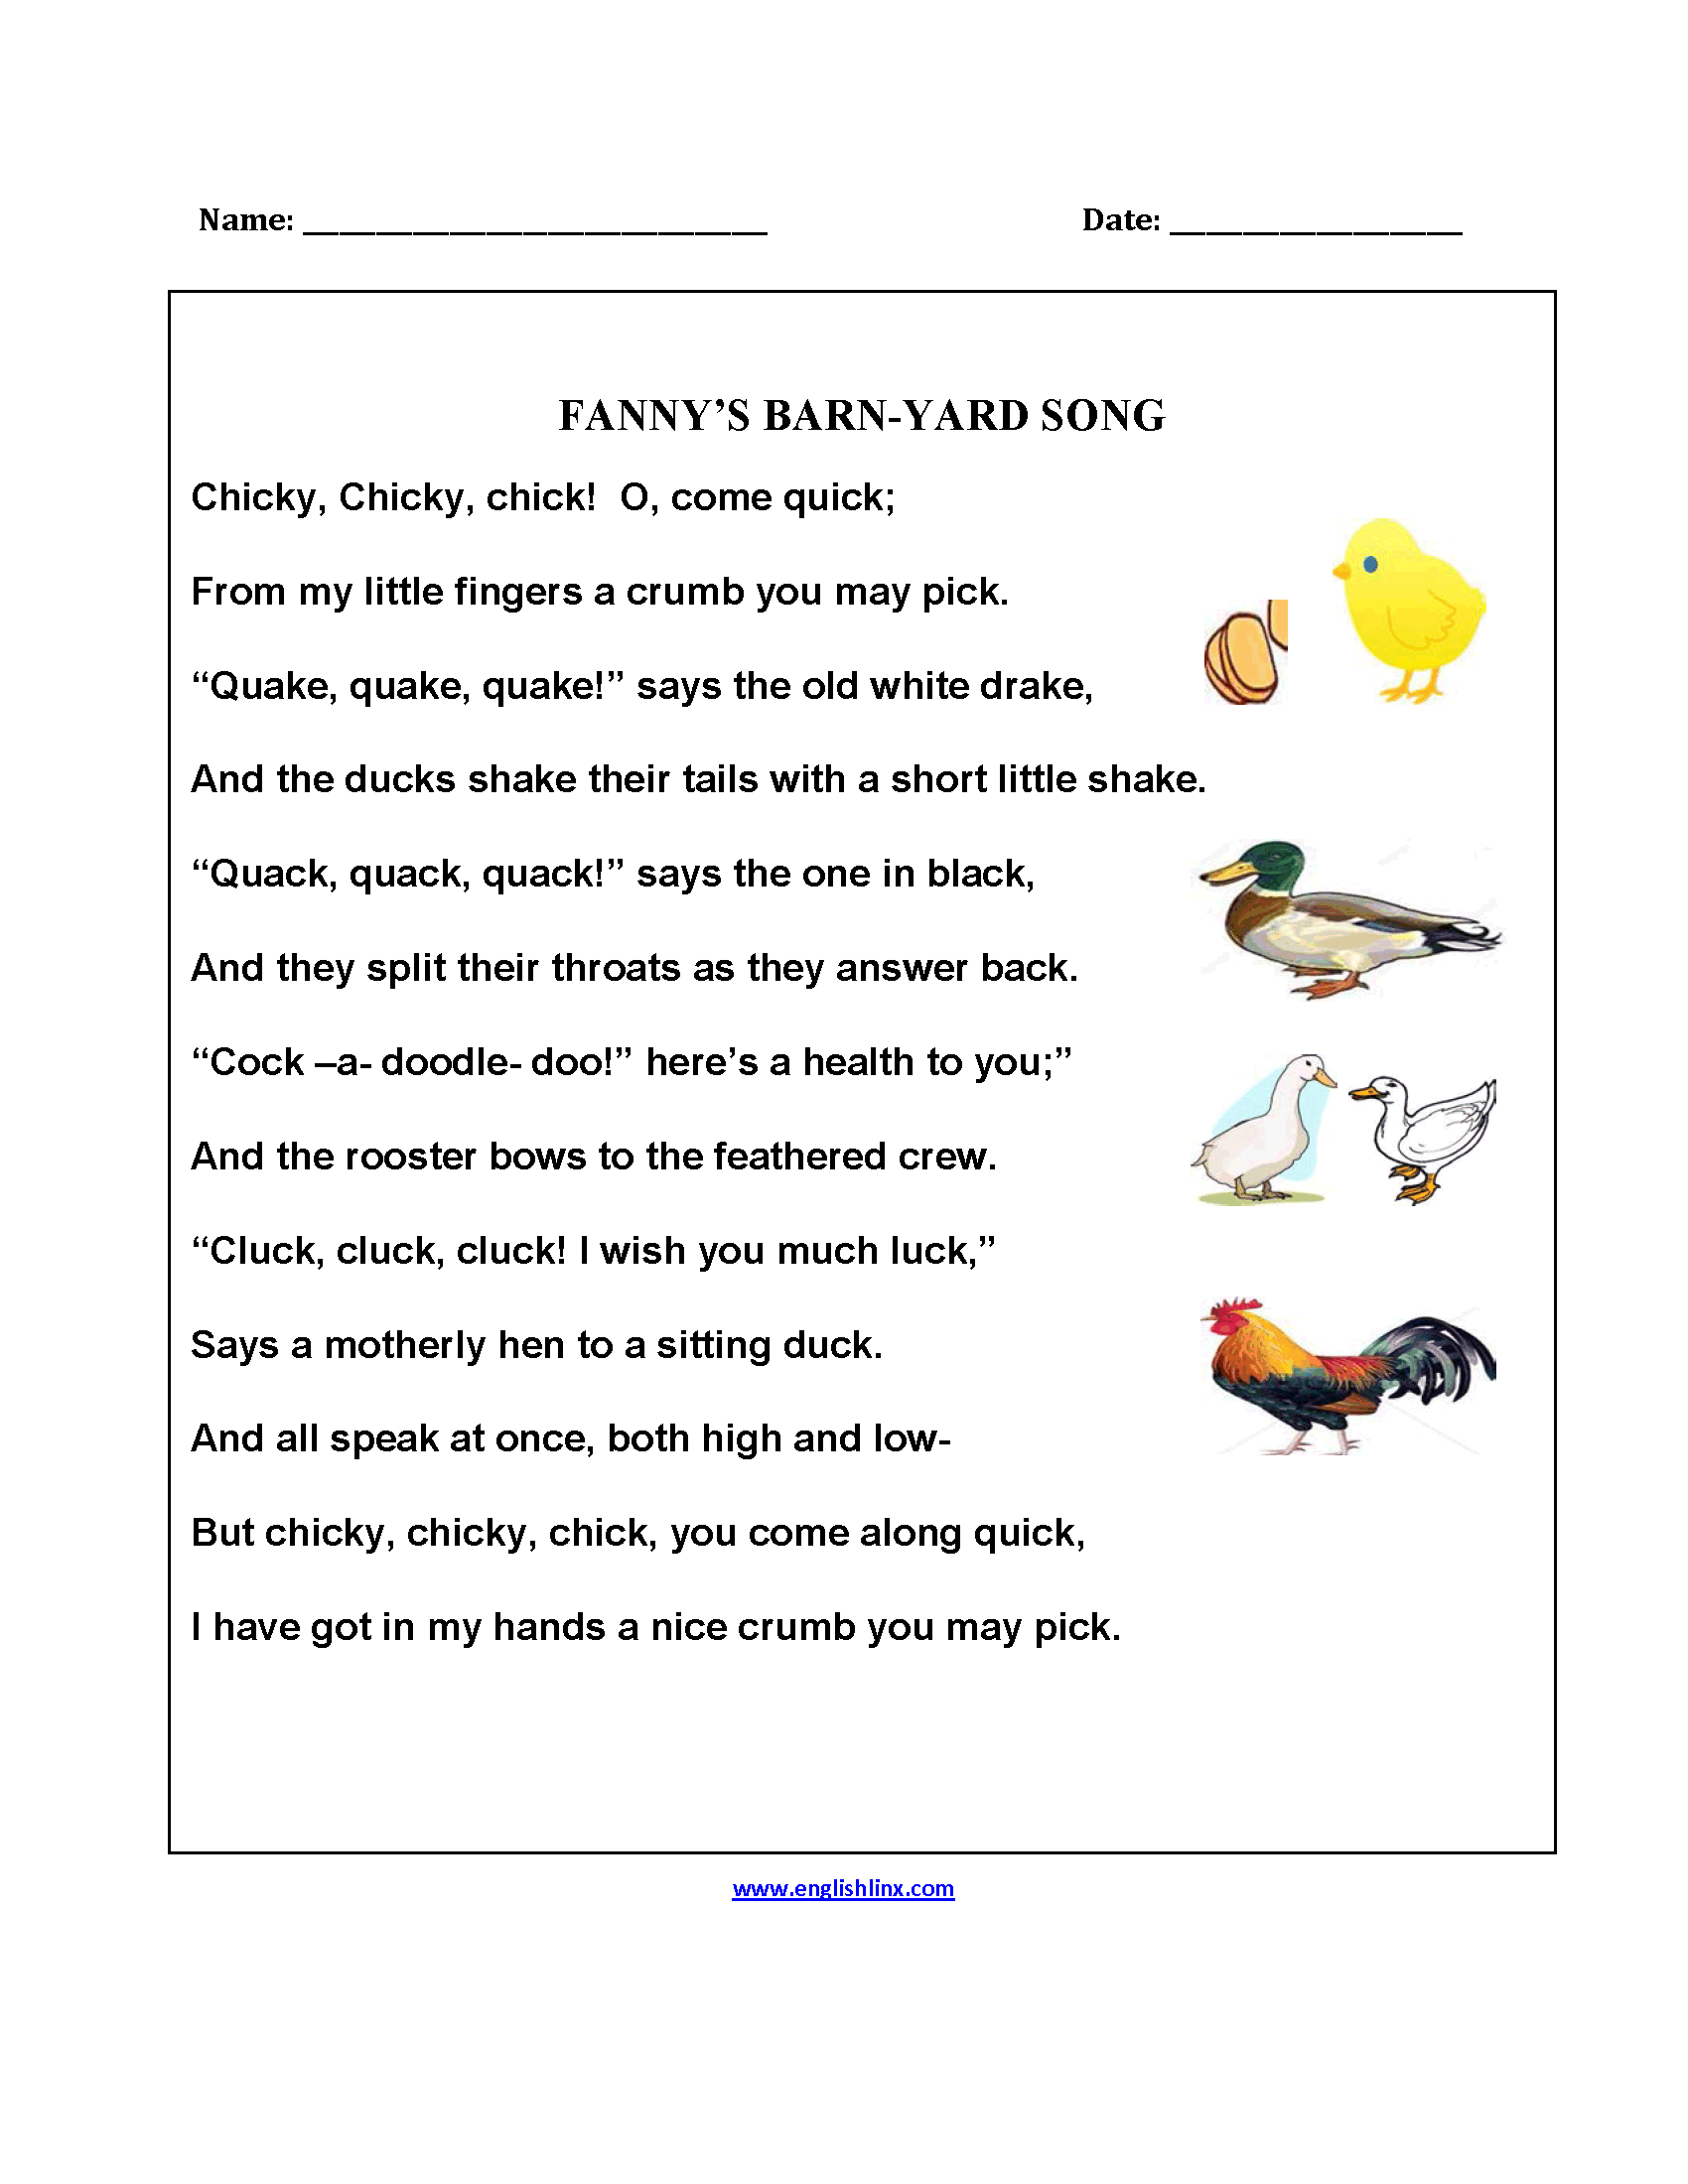 Fanny's Barnyard Song Poetry Worksheets